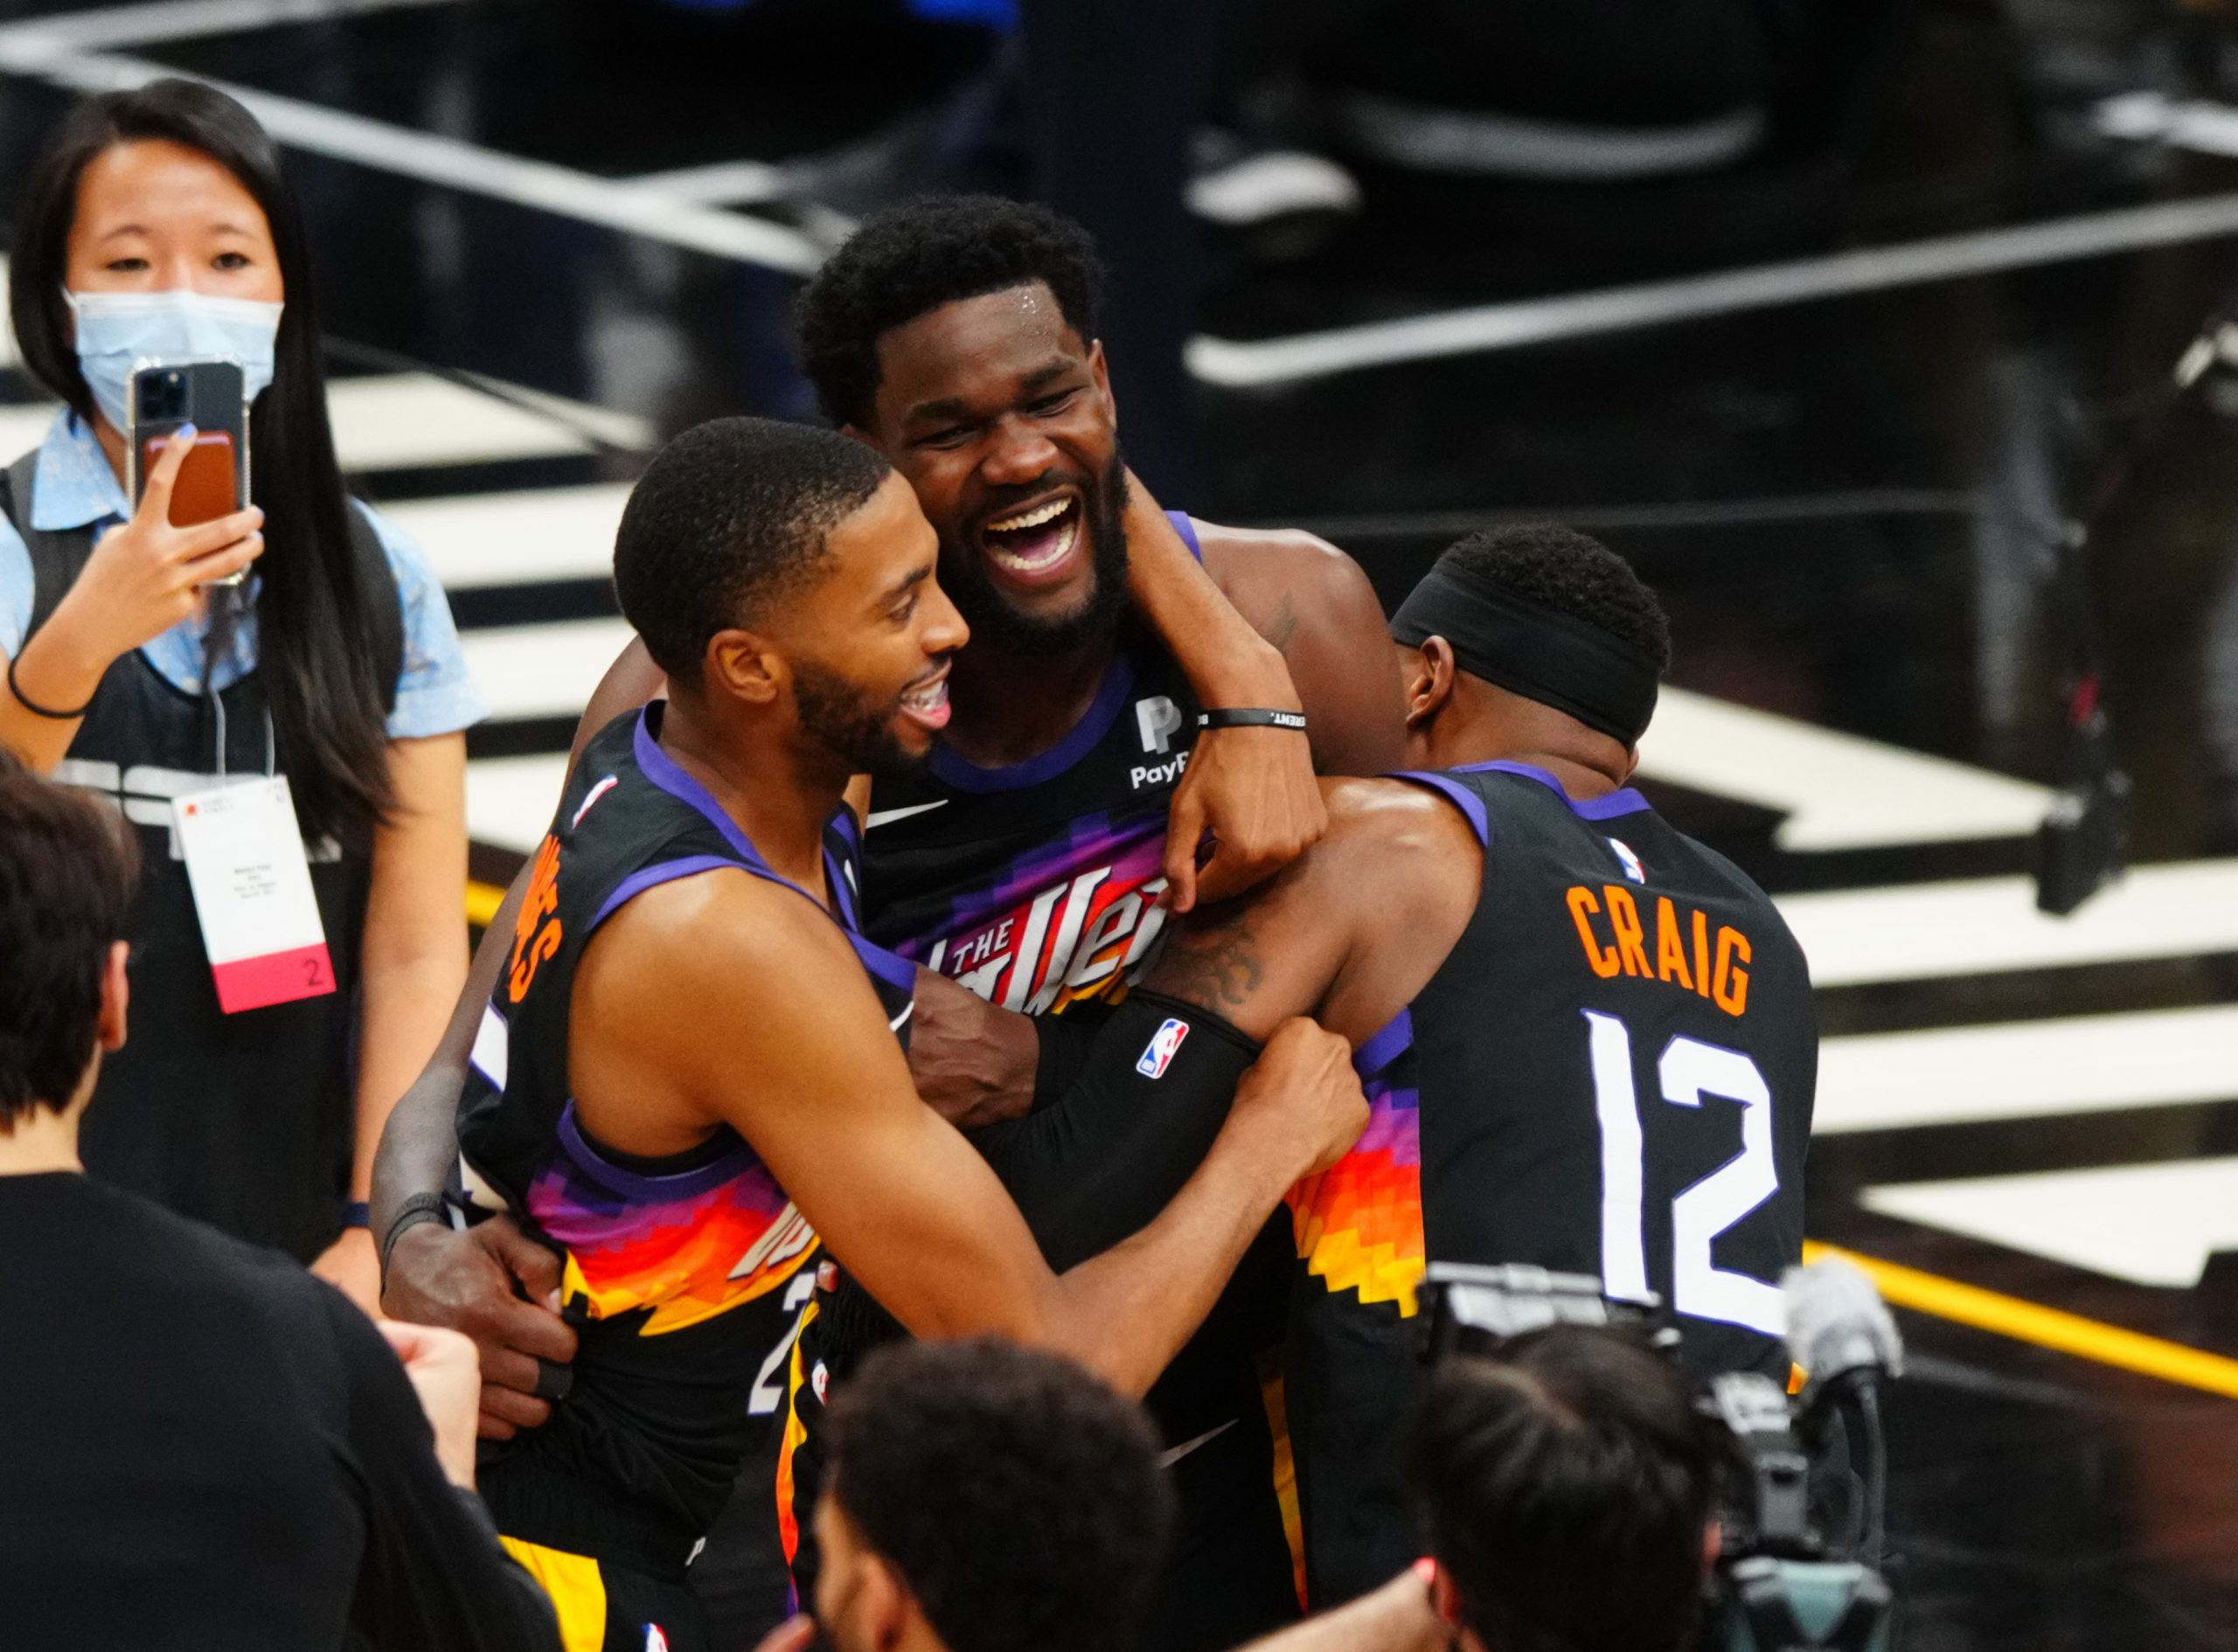 Phoenix Suns center Deandre Ayton (22) celebrates with teammates after scoring the game winning shot against the Los Angeles Clippers in the second half during game two of the Western Conference Finals for the 2021 NBA Playoffs at Phoenix Suns Arena